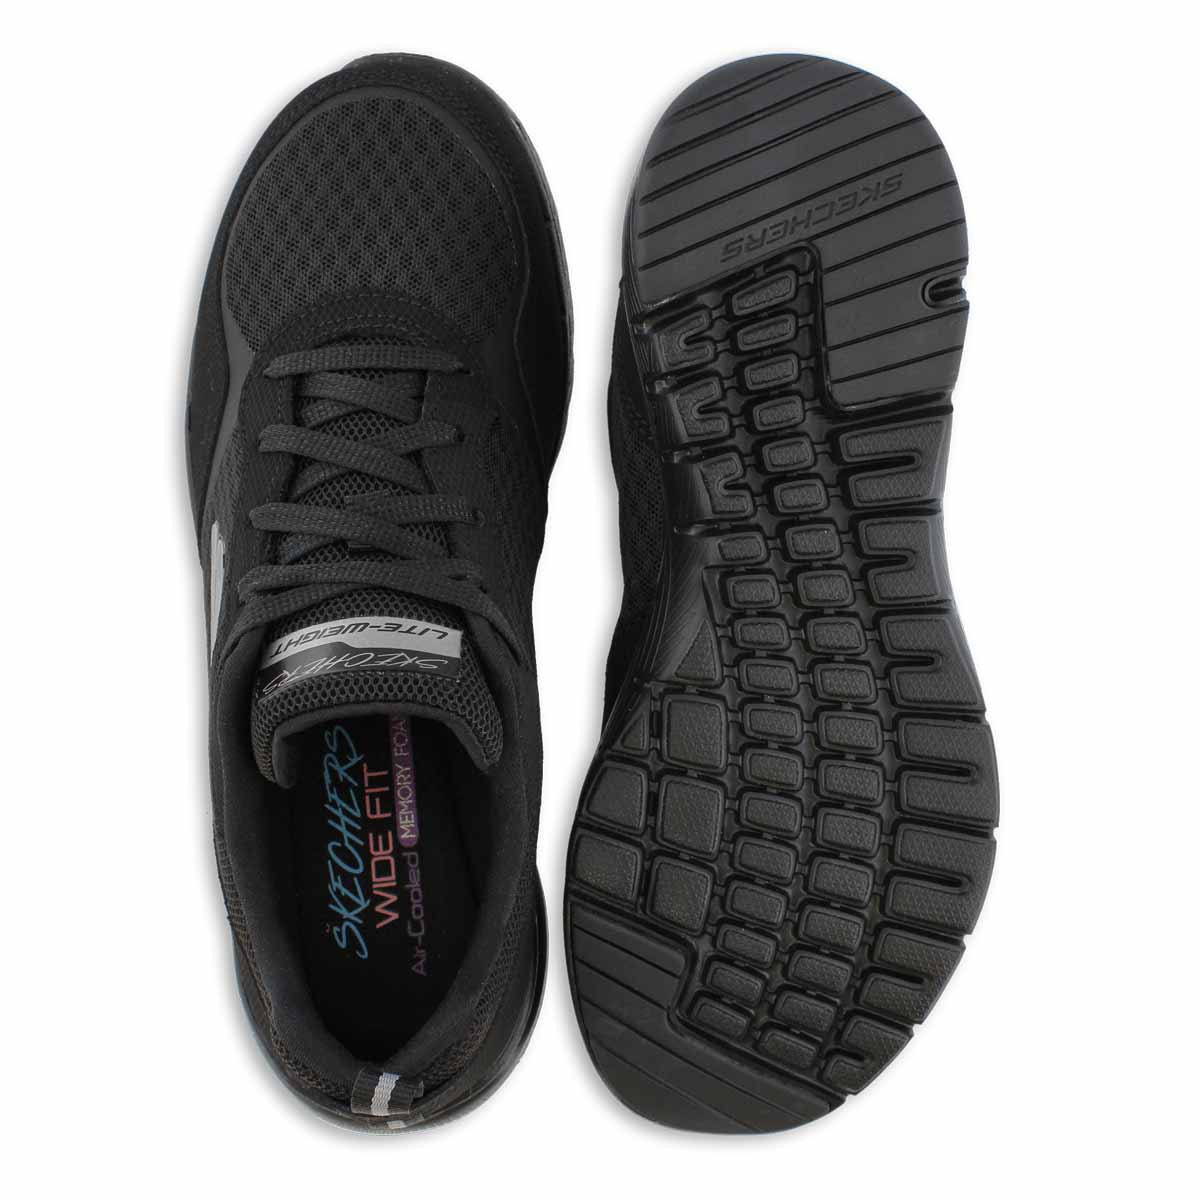 Lds Flex Appeal 3.0 Go Forward blk  -WD